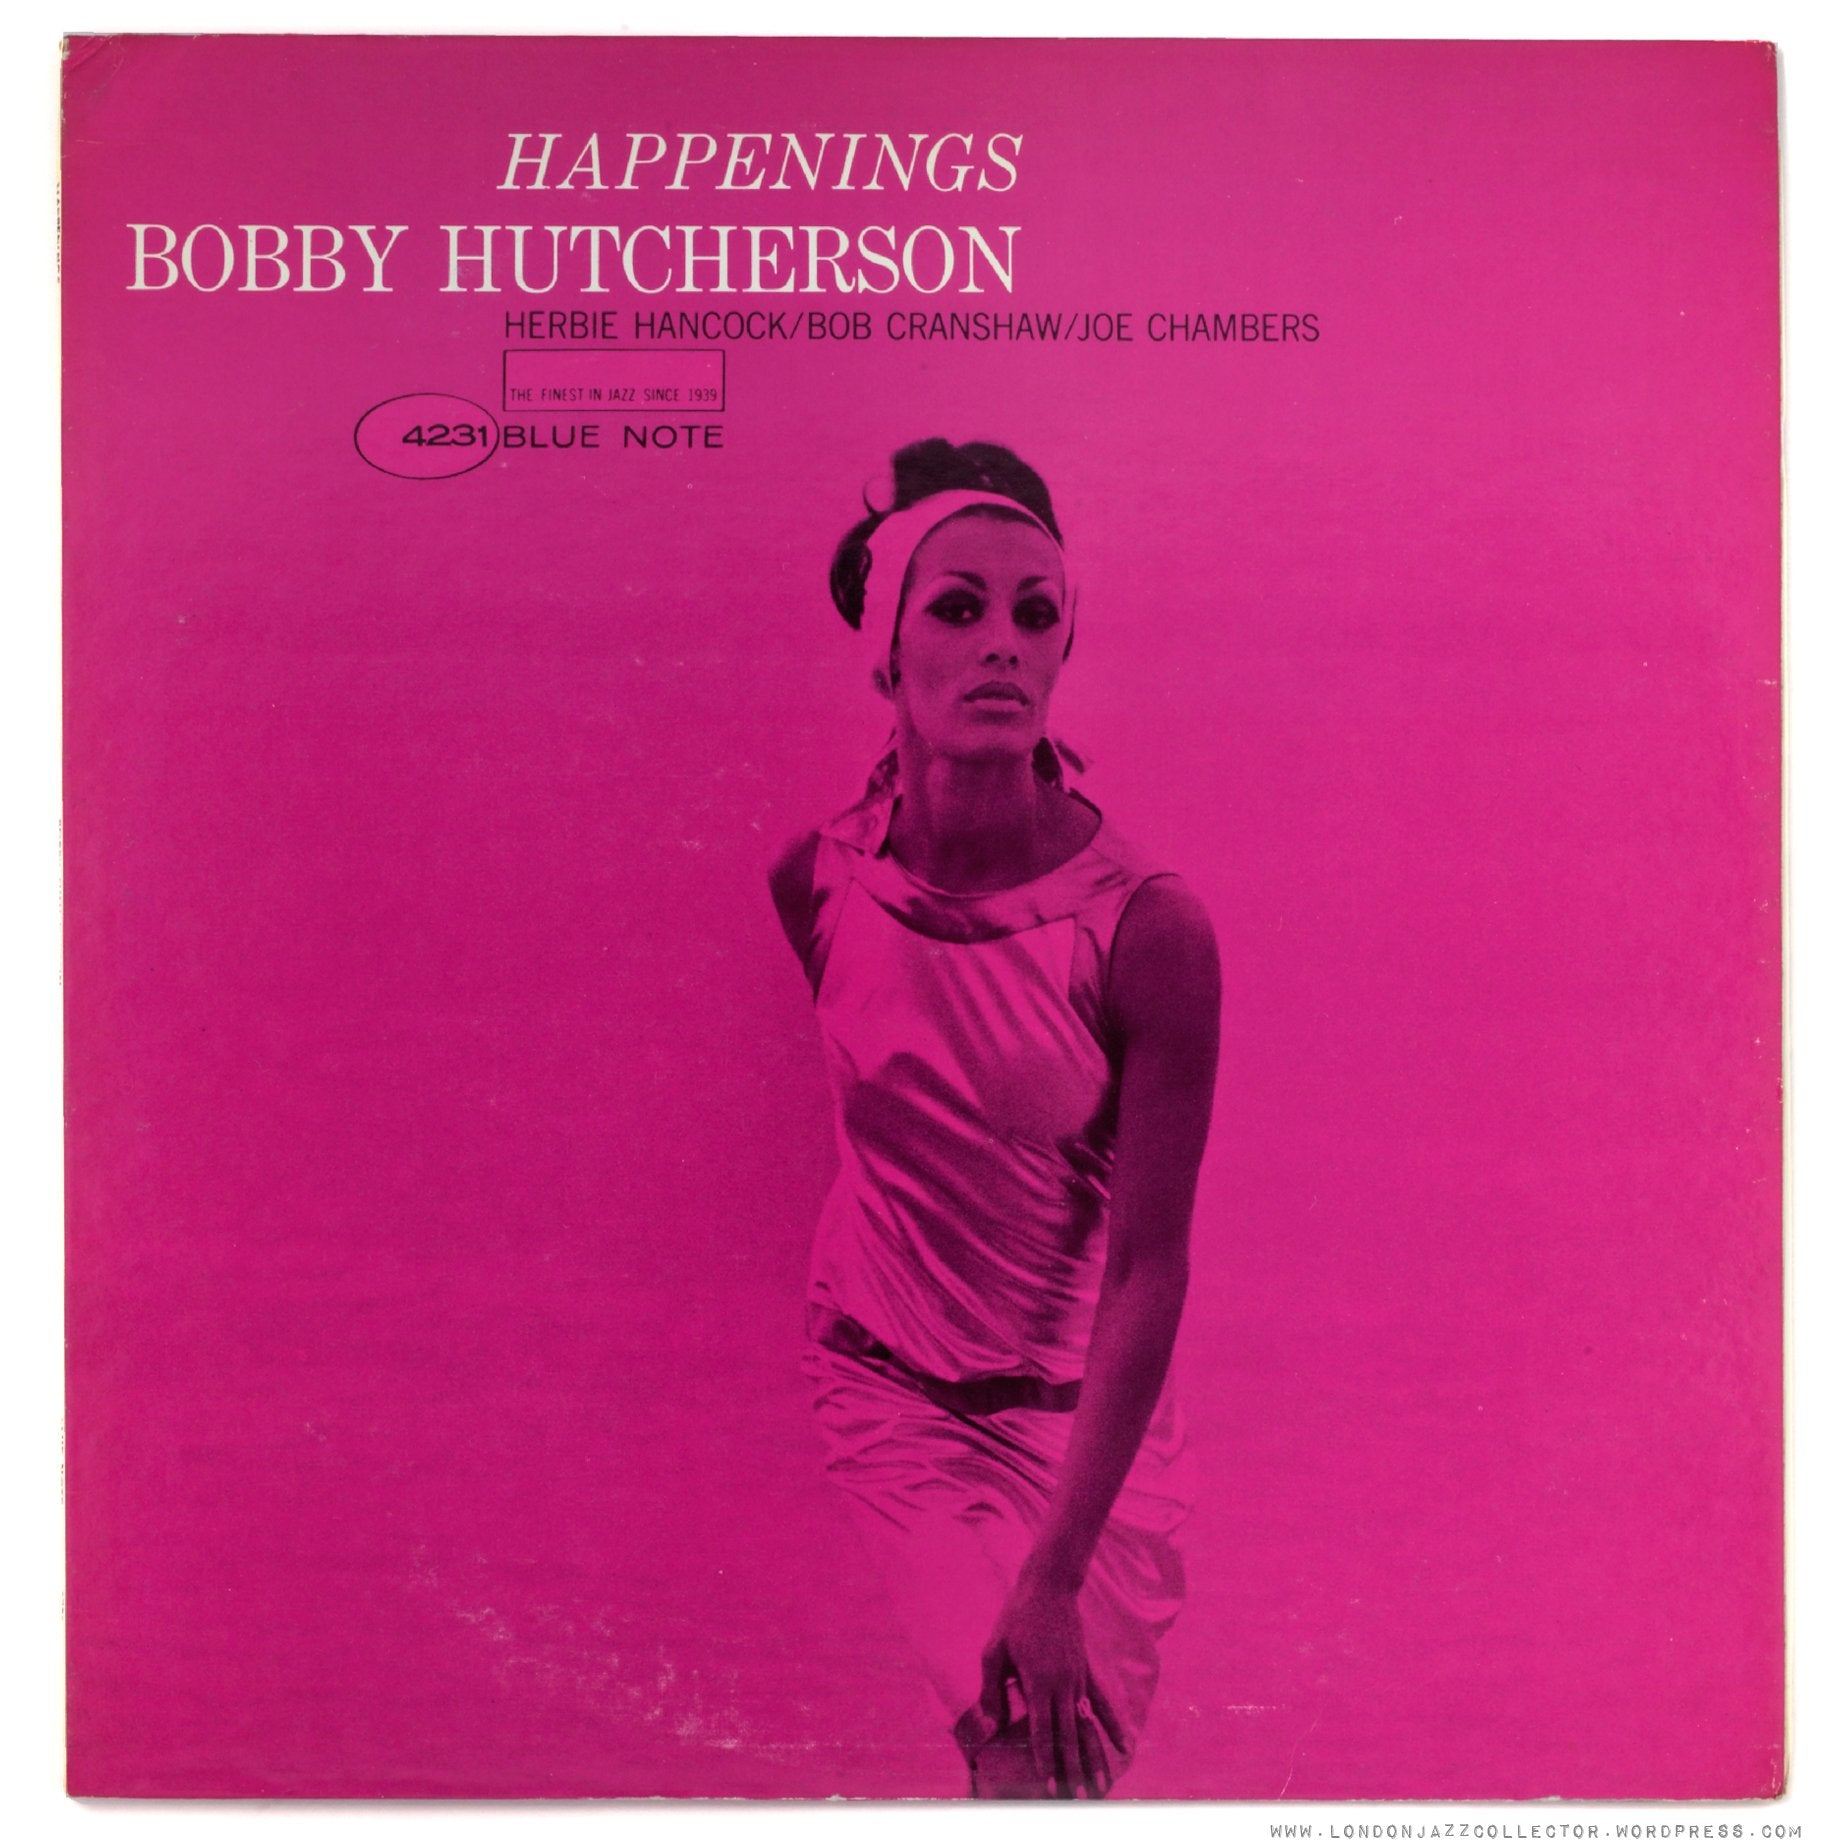 Bobby Hutcherson - Happenings (4576185385047)